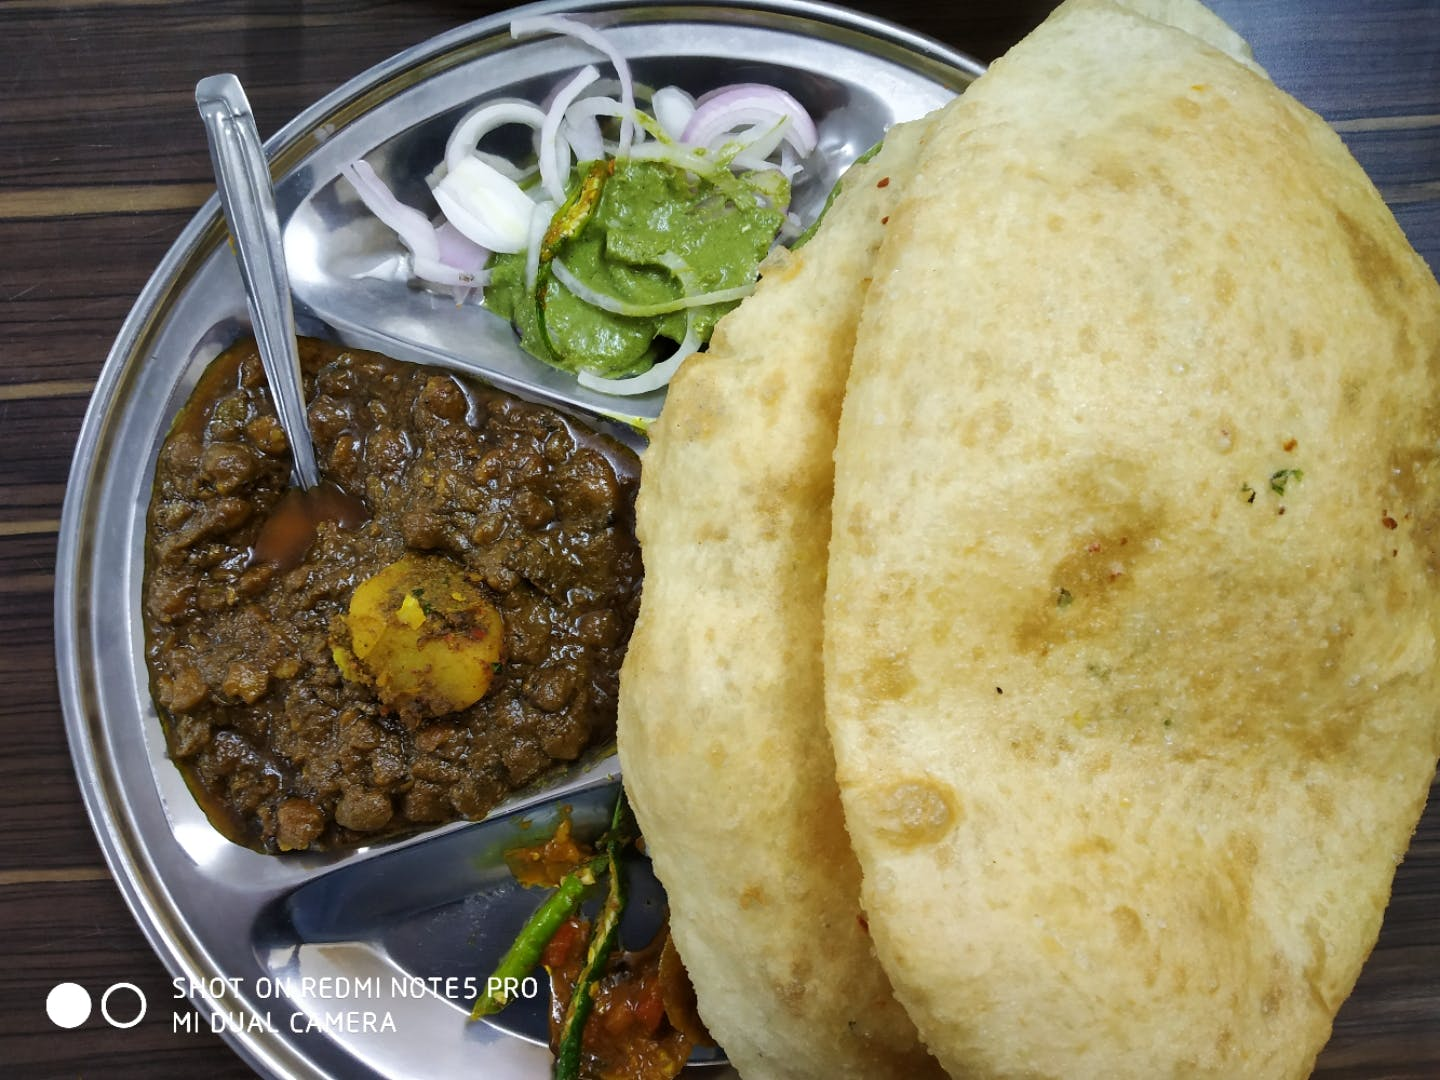 Civil Lines Wala ServesThe Best Chhole Bhature In Town